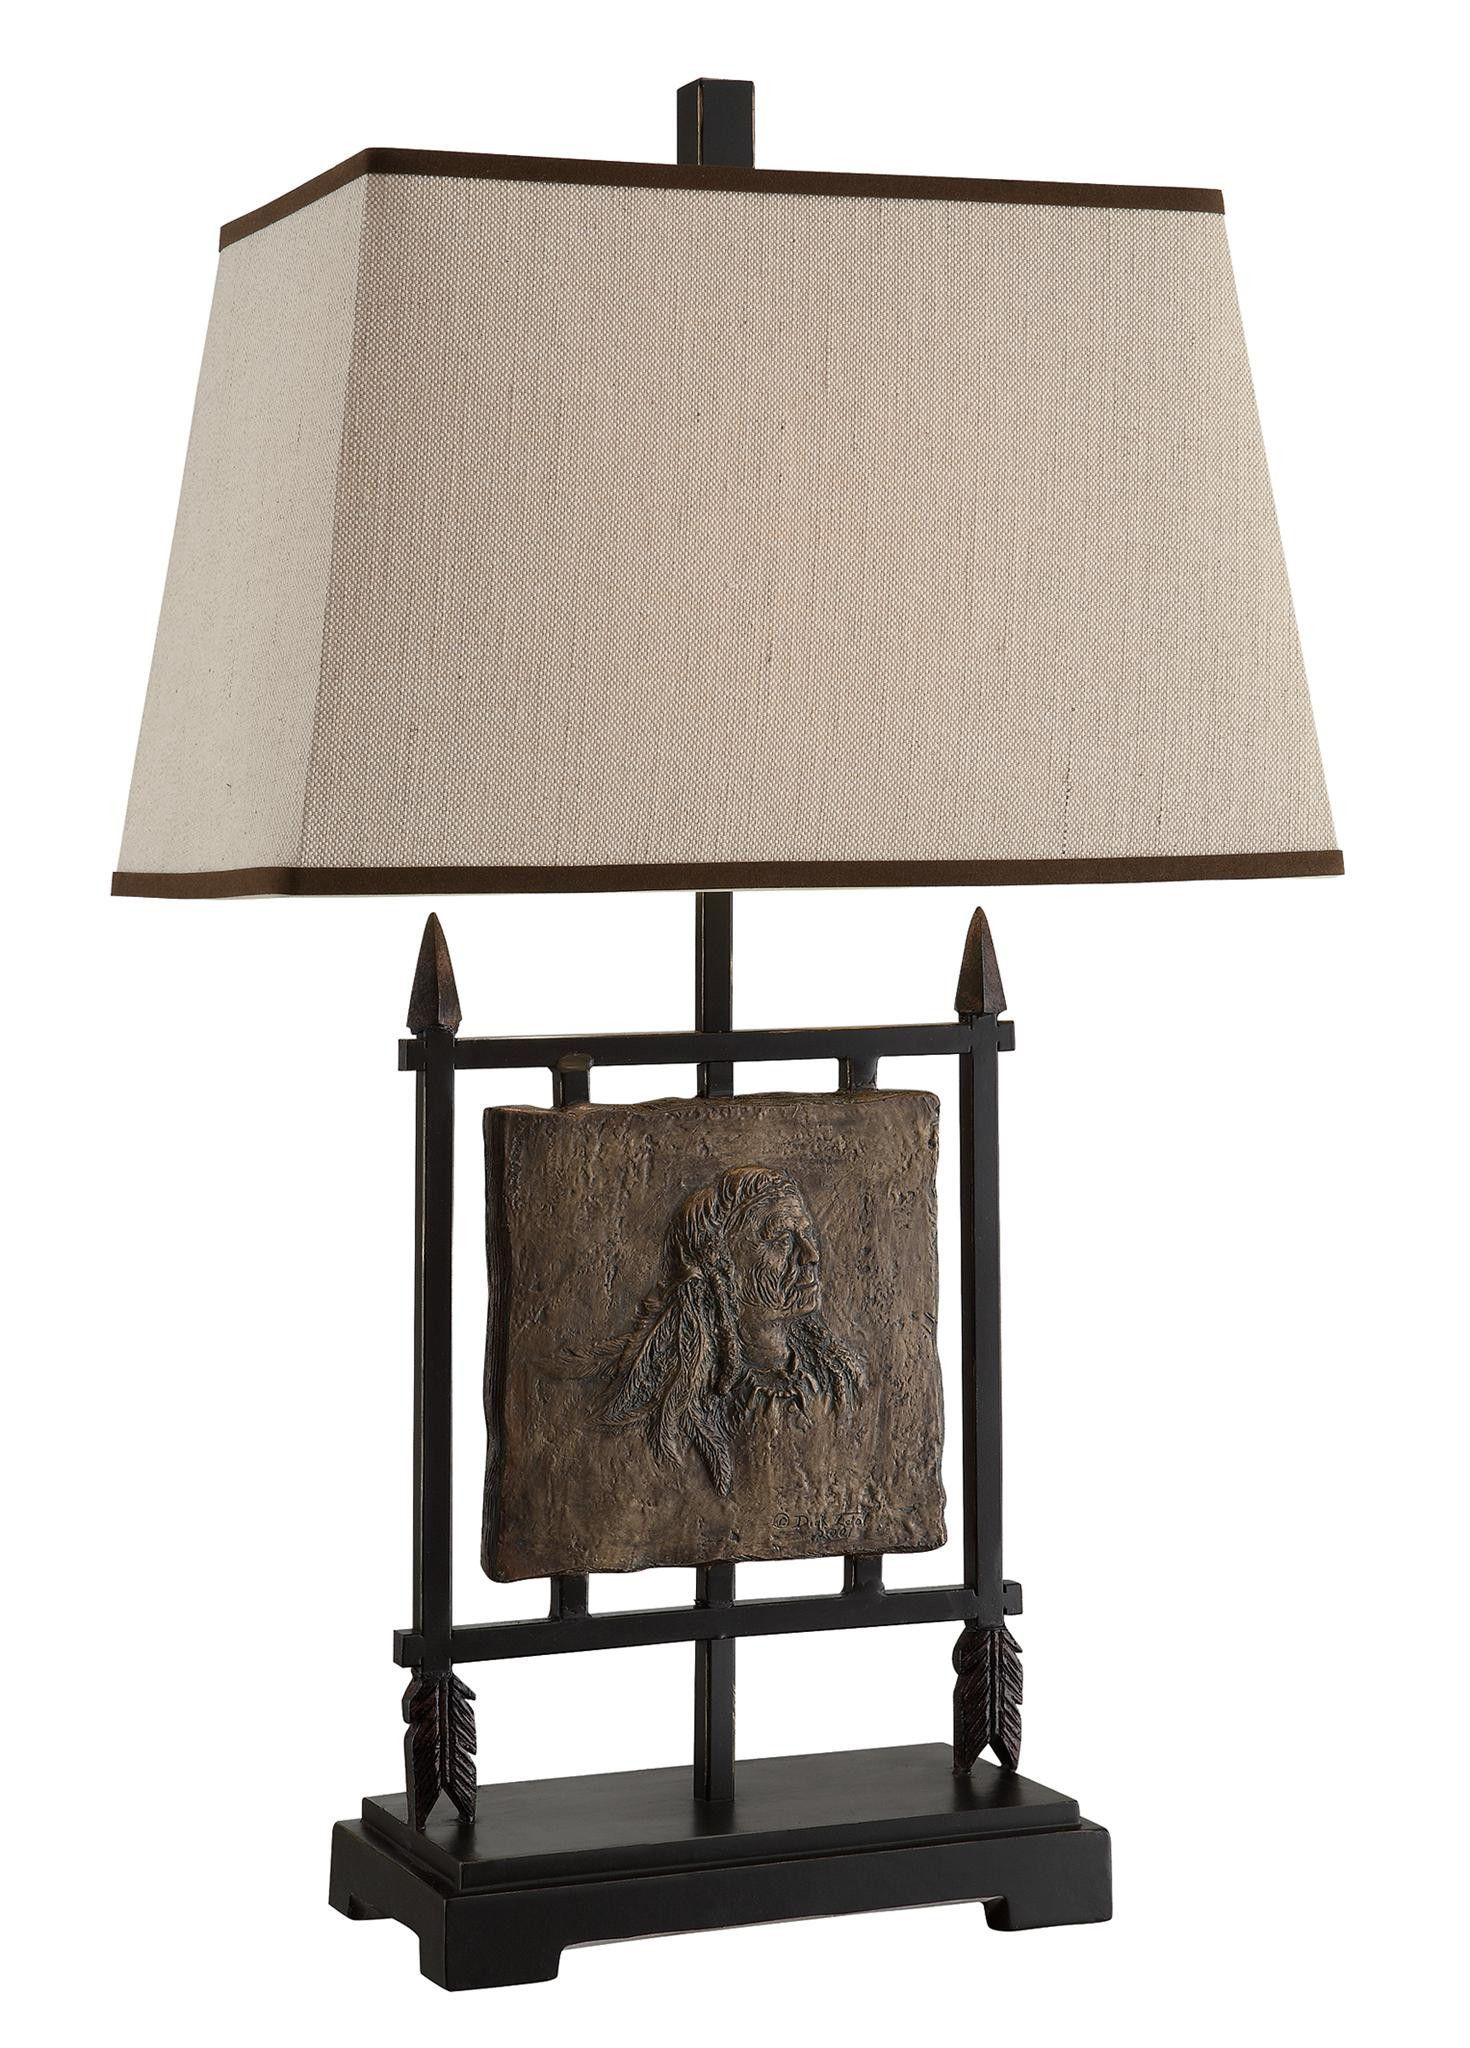 Crestview native american table lamp 29ht csaup788 products crestview native american table lamp 29ht csaup788 aloadofball Image collections